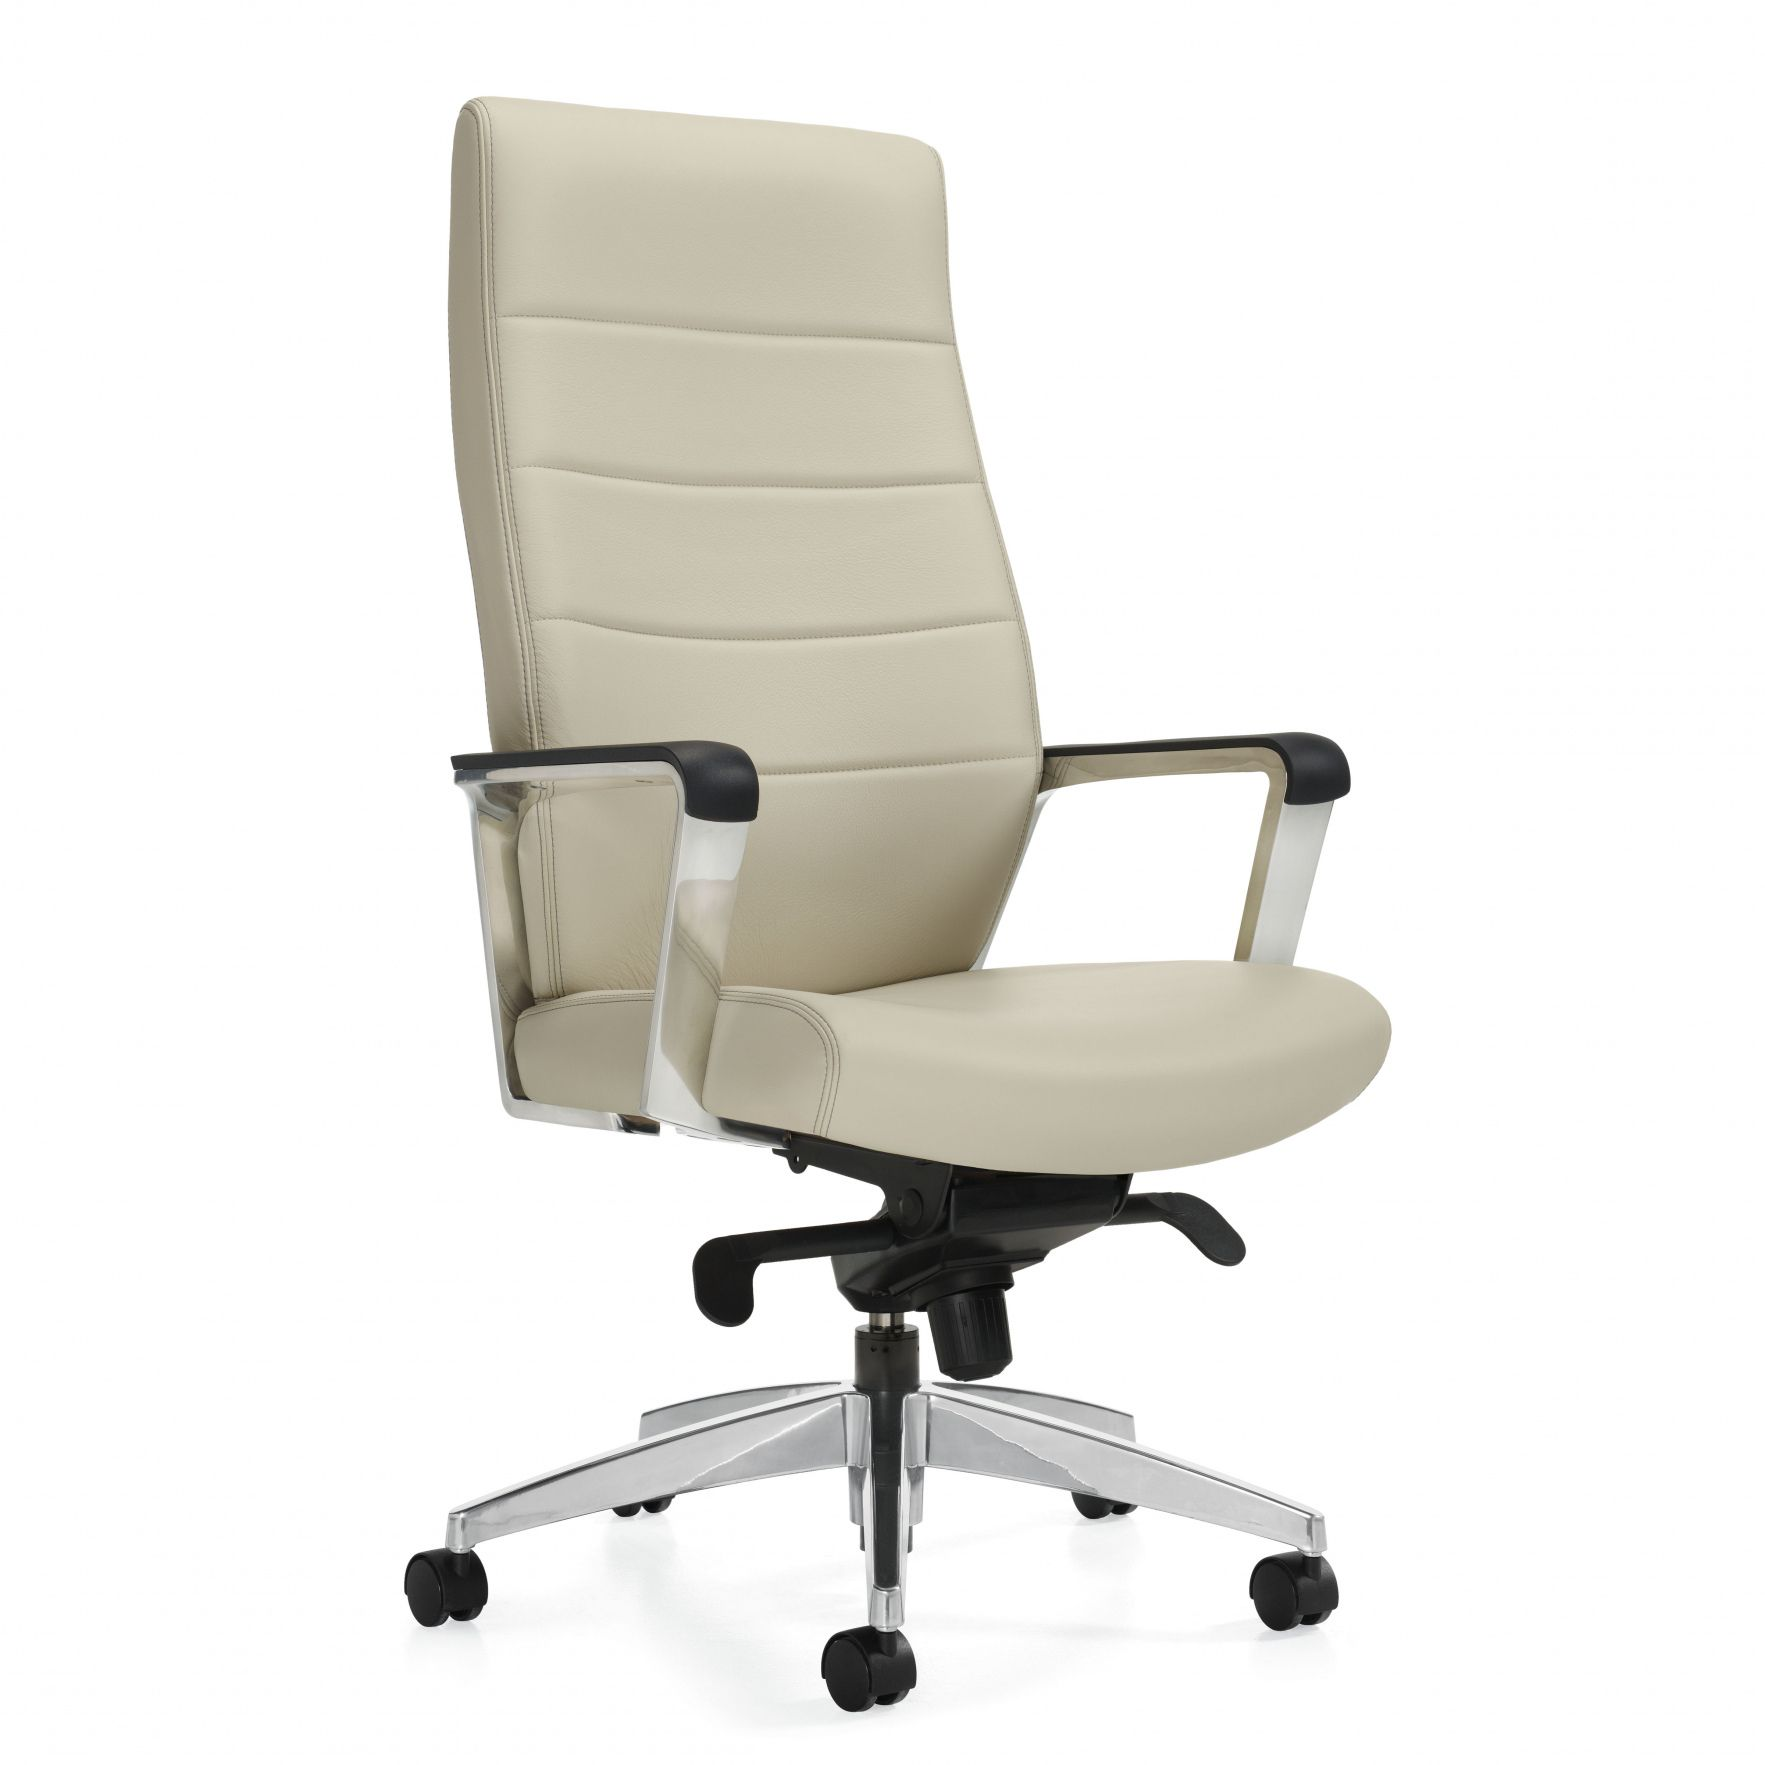 2018 Global Office Chair - Best Paint for Furniture Check more at //  sc 1 st  Pinterest & 2018 Global Office Chair - Best Paint for Furniture Check more at ...